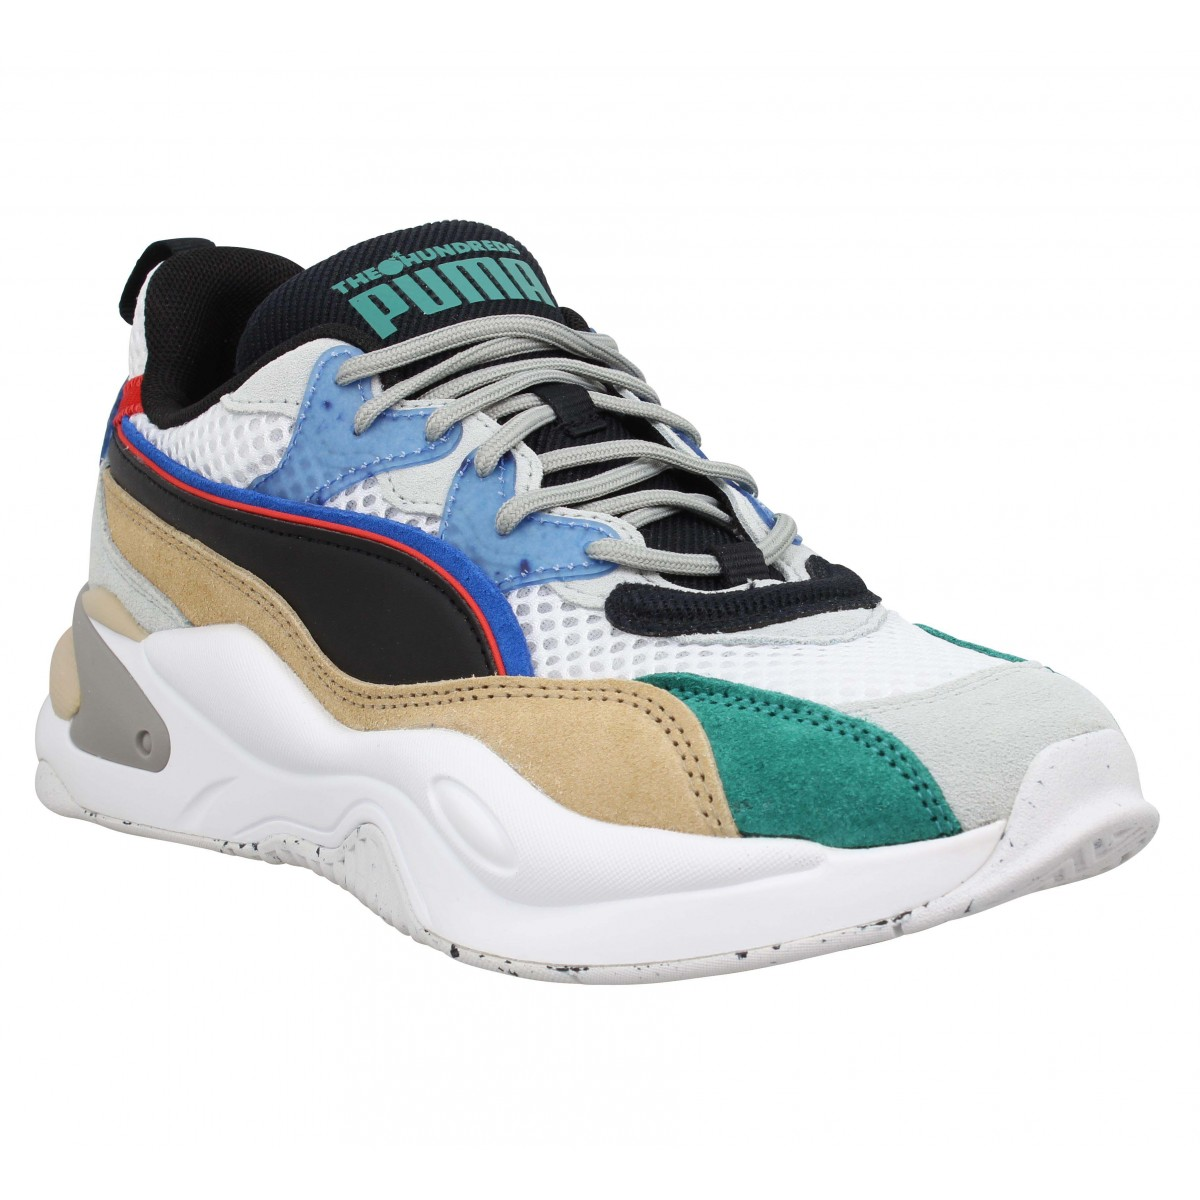 Baskets PUMA RS-2K HF The Hundreds velours toile Homme Blanc Noir